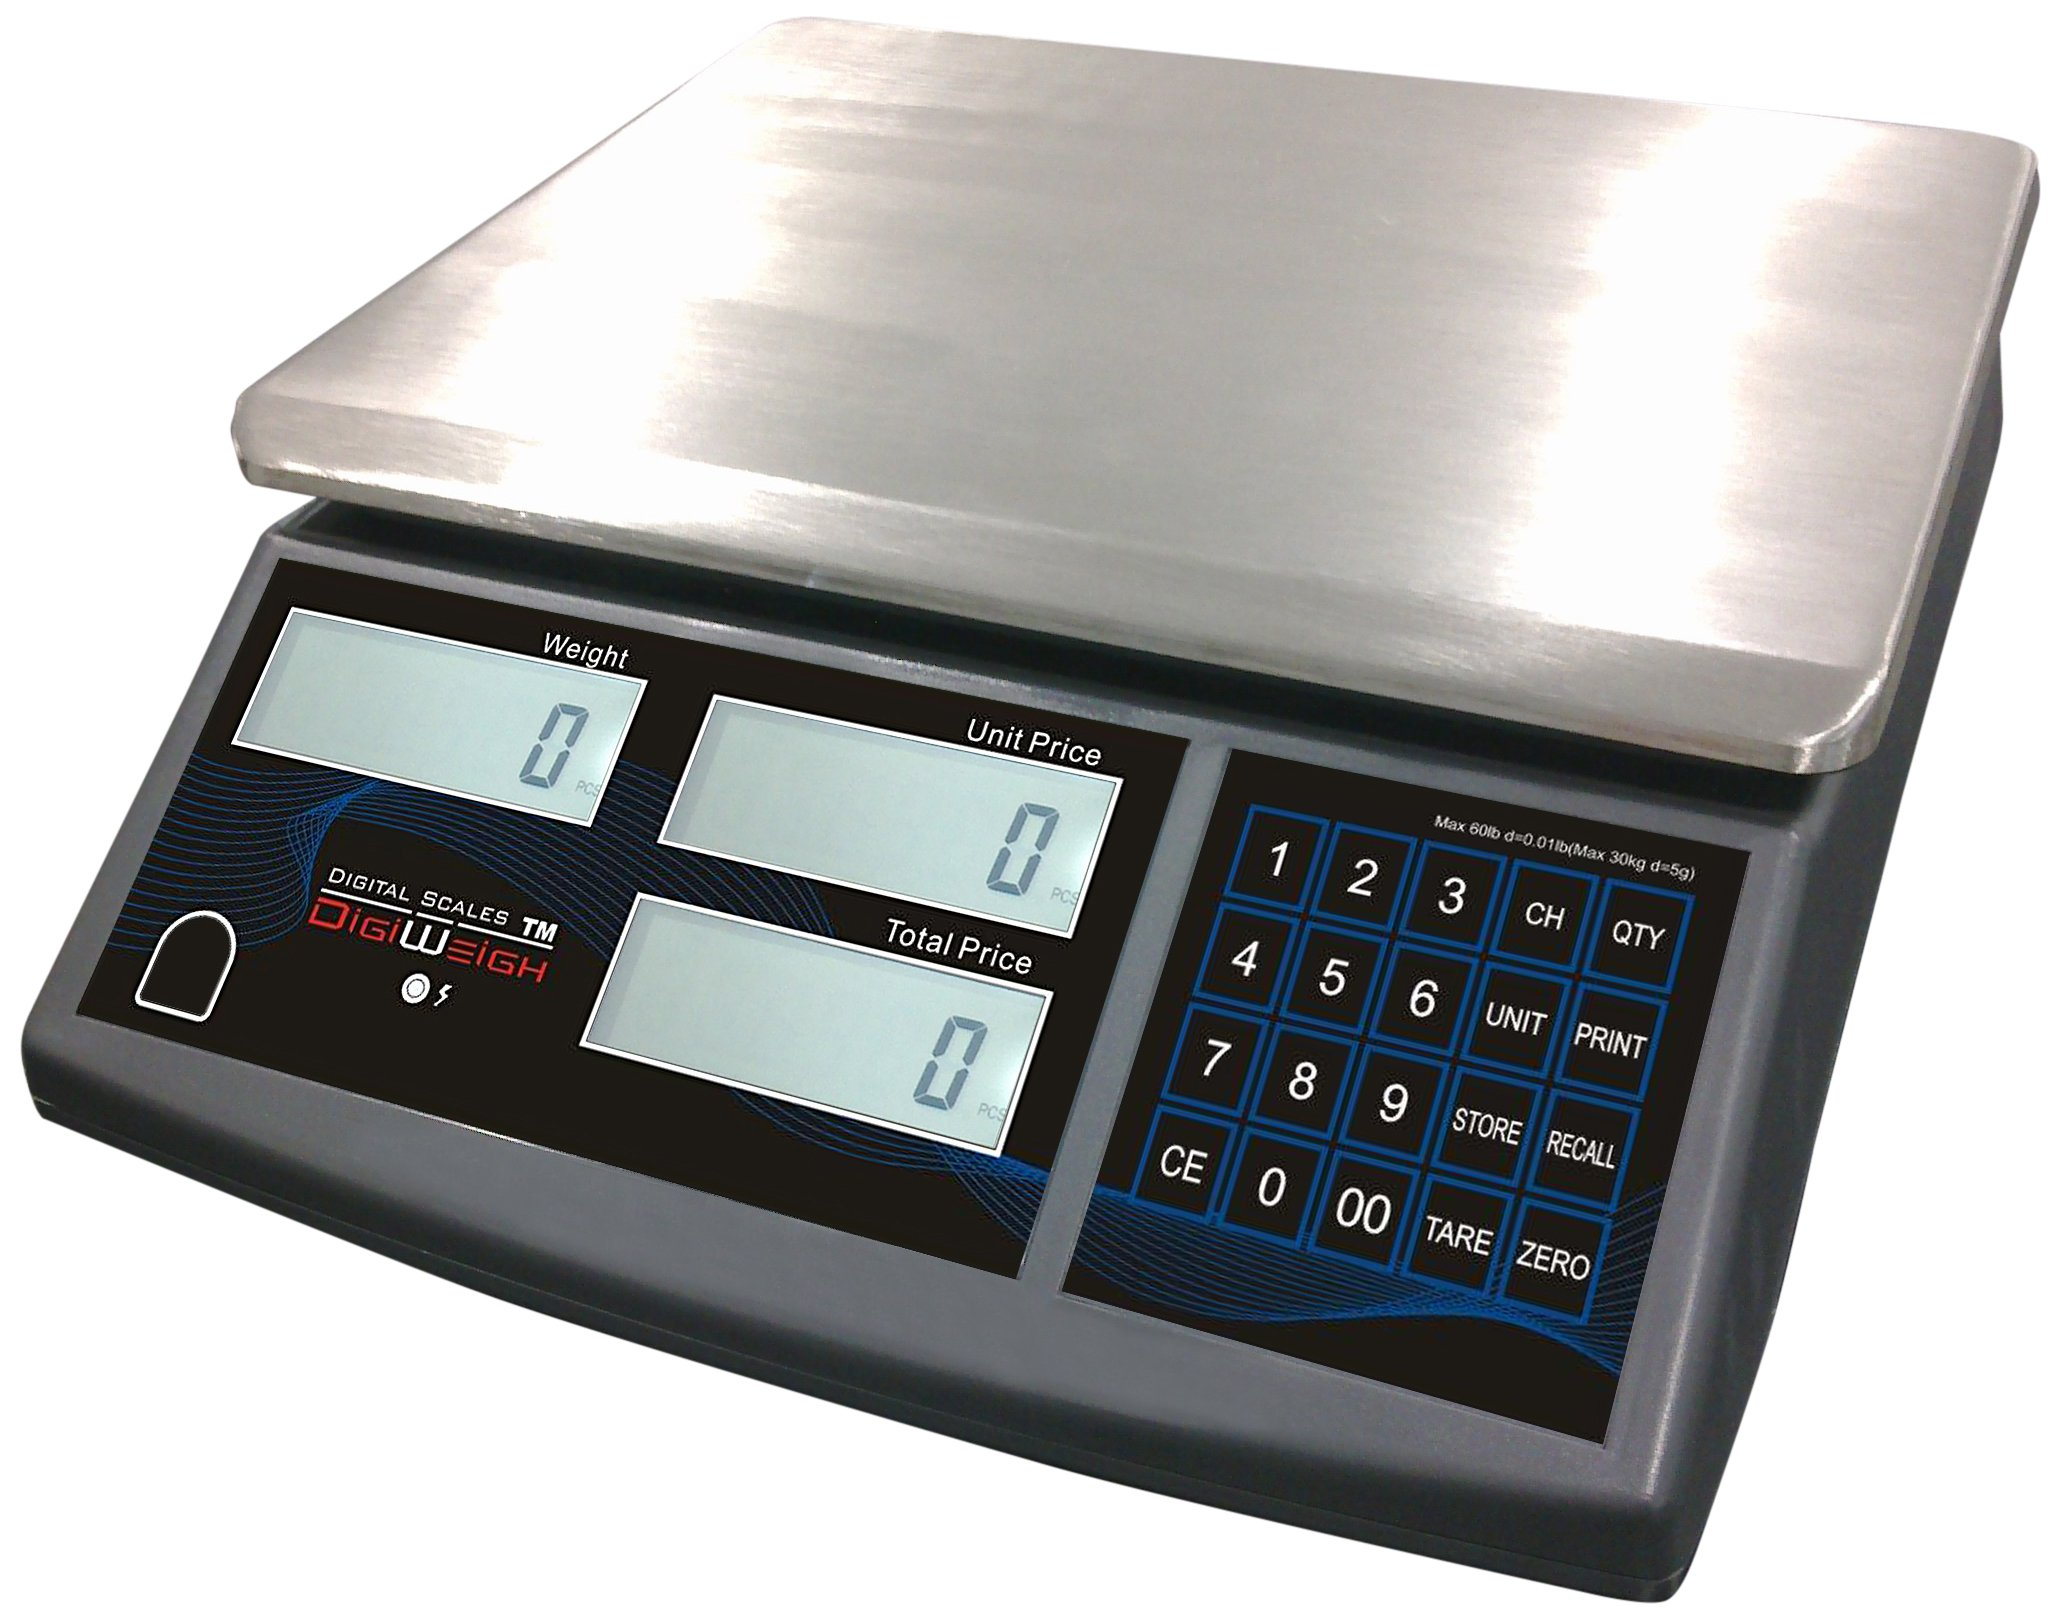 Digiweigh High Precise Price Computing Scale (DWP-30PC) by DigiWeigh